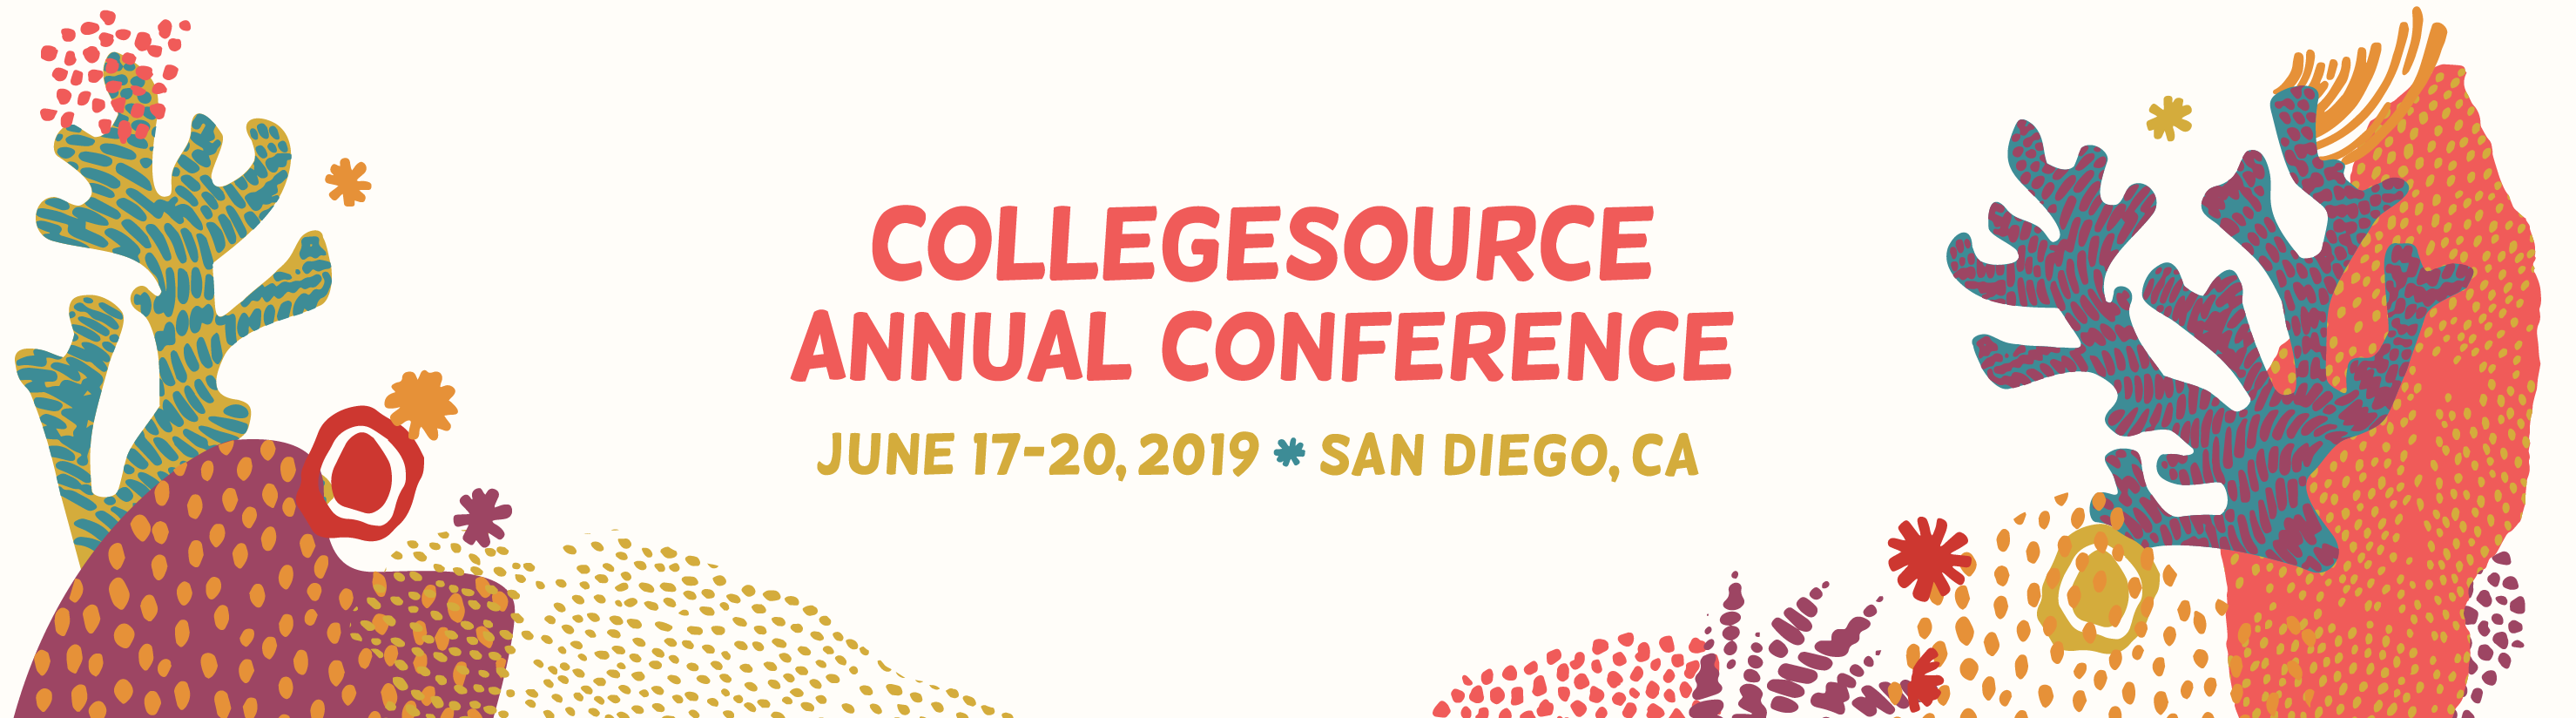 CollegeSource Annual Conference Header Image